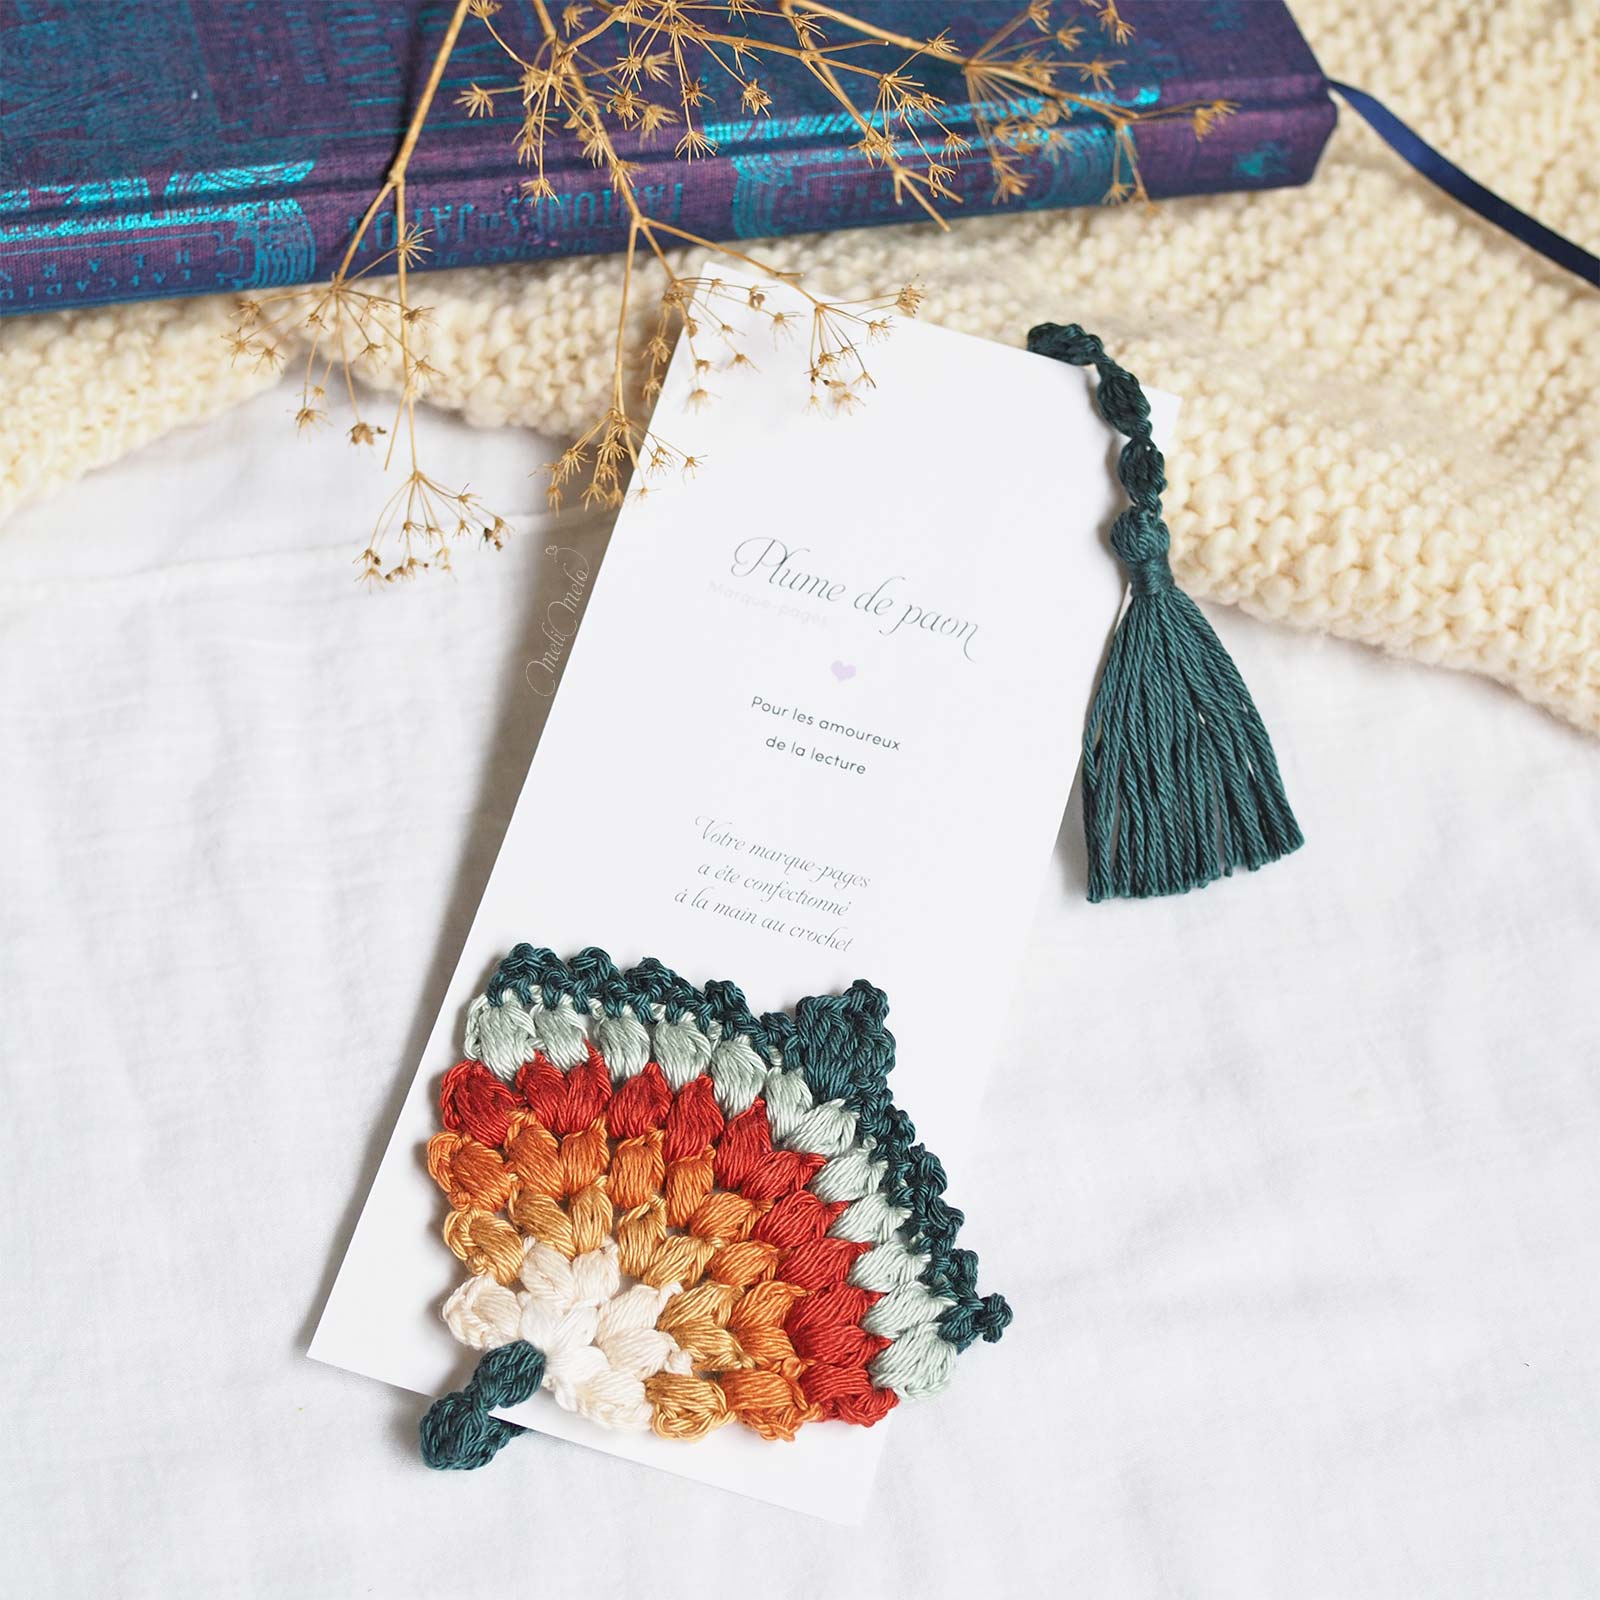 marque-page-crochet-thecuriocraftsroom-peacock-fan-bookmark-laboutiquedemelimelo